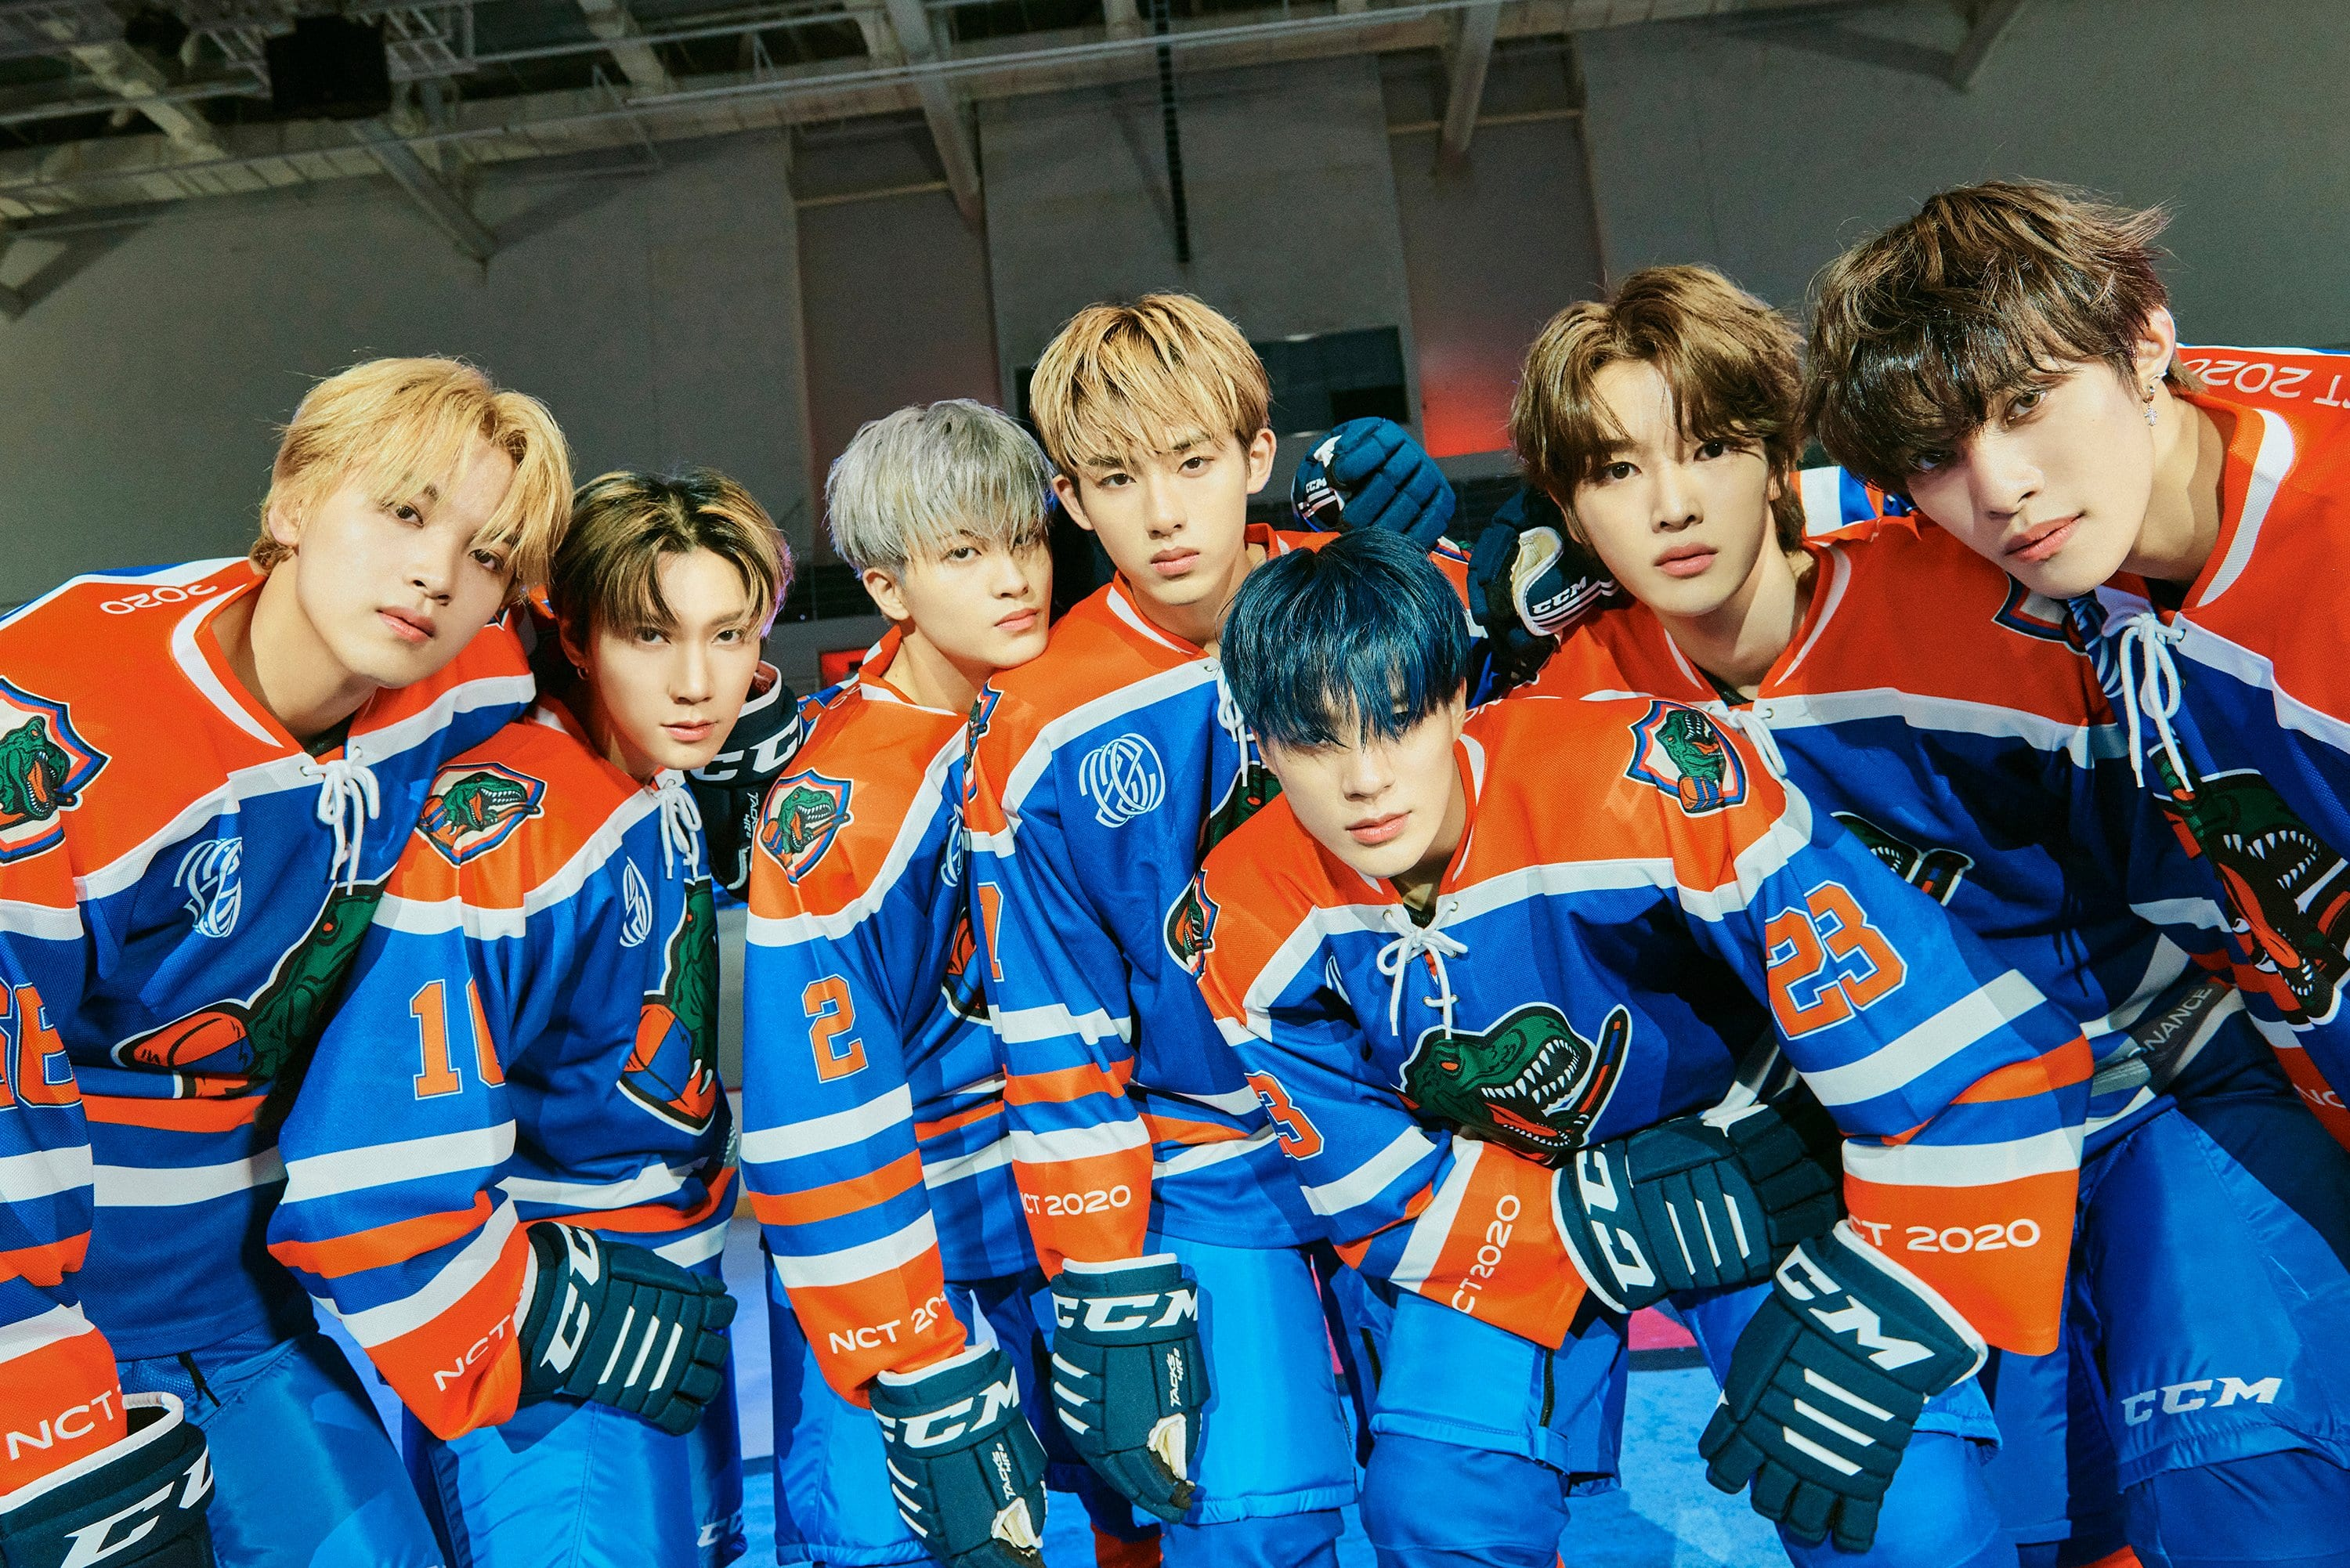 nct 21